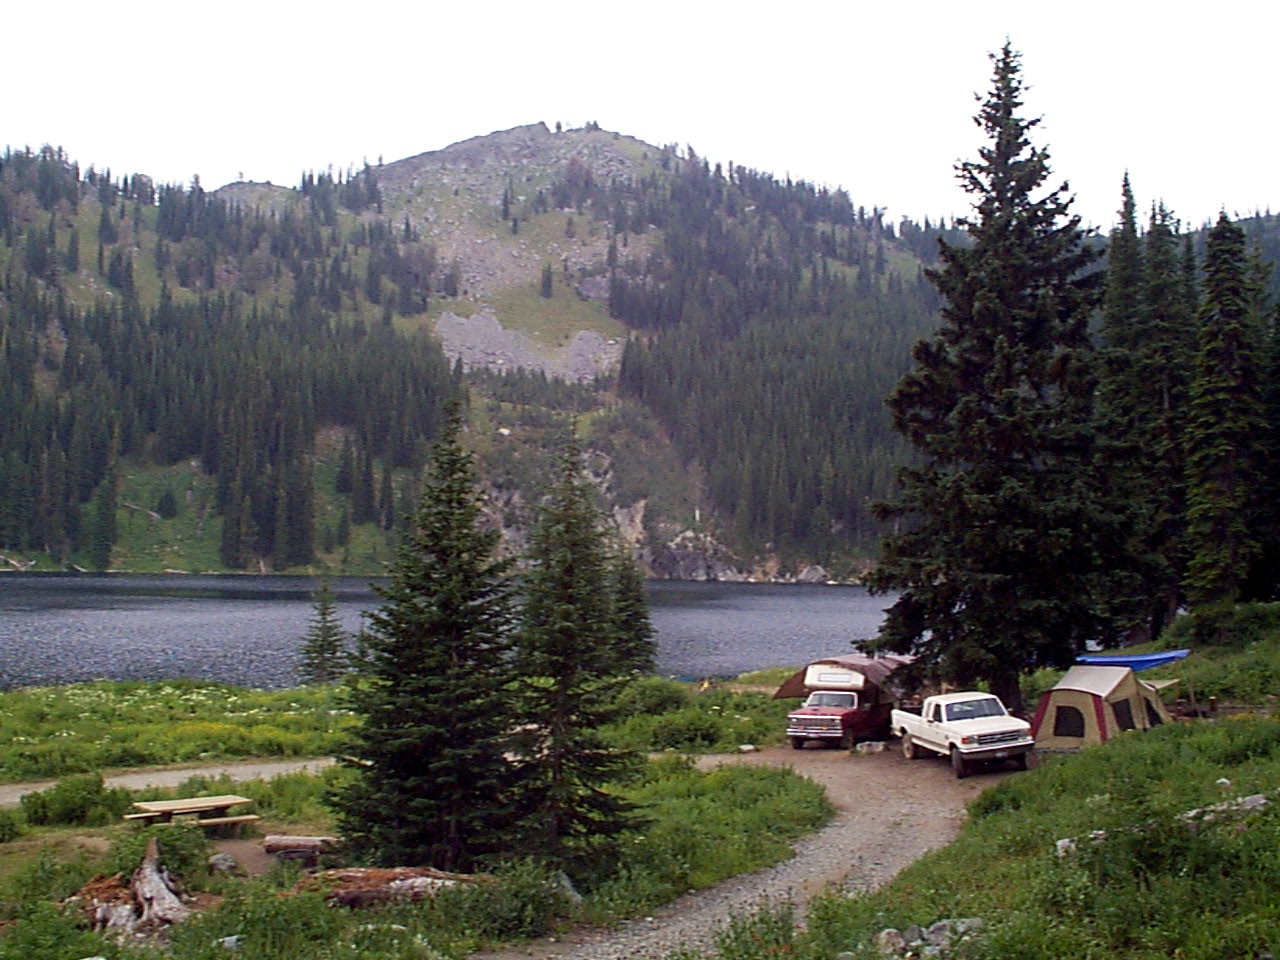 High mountain lake and campers at Black Lake Campground